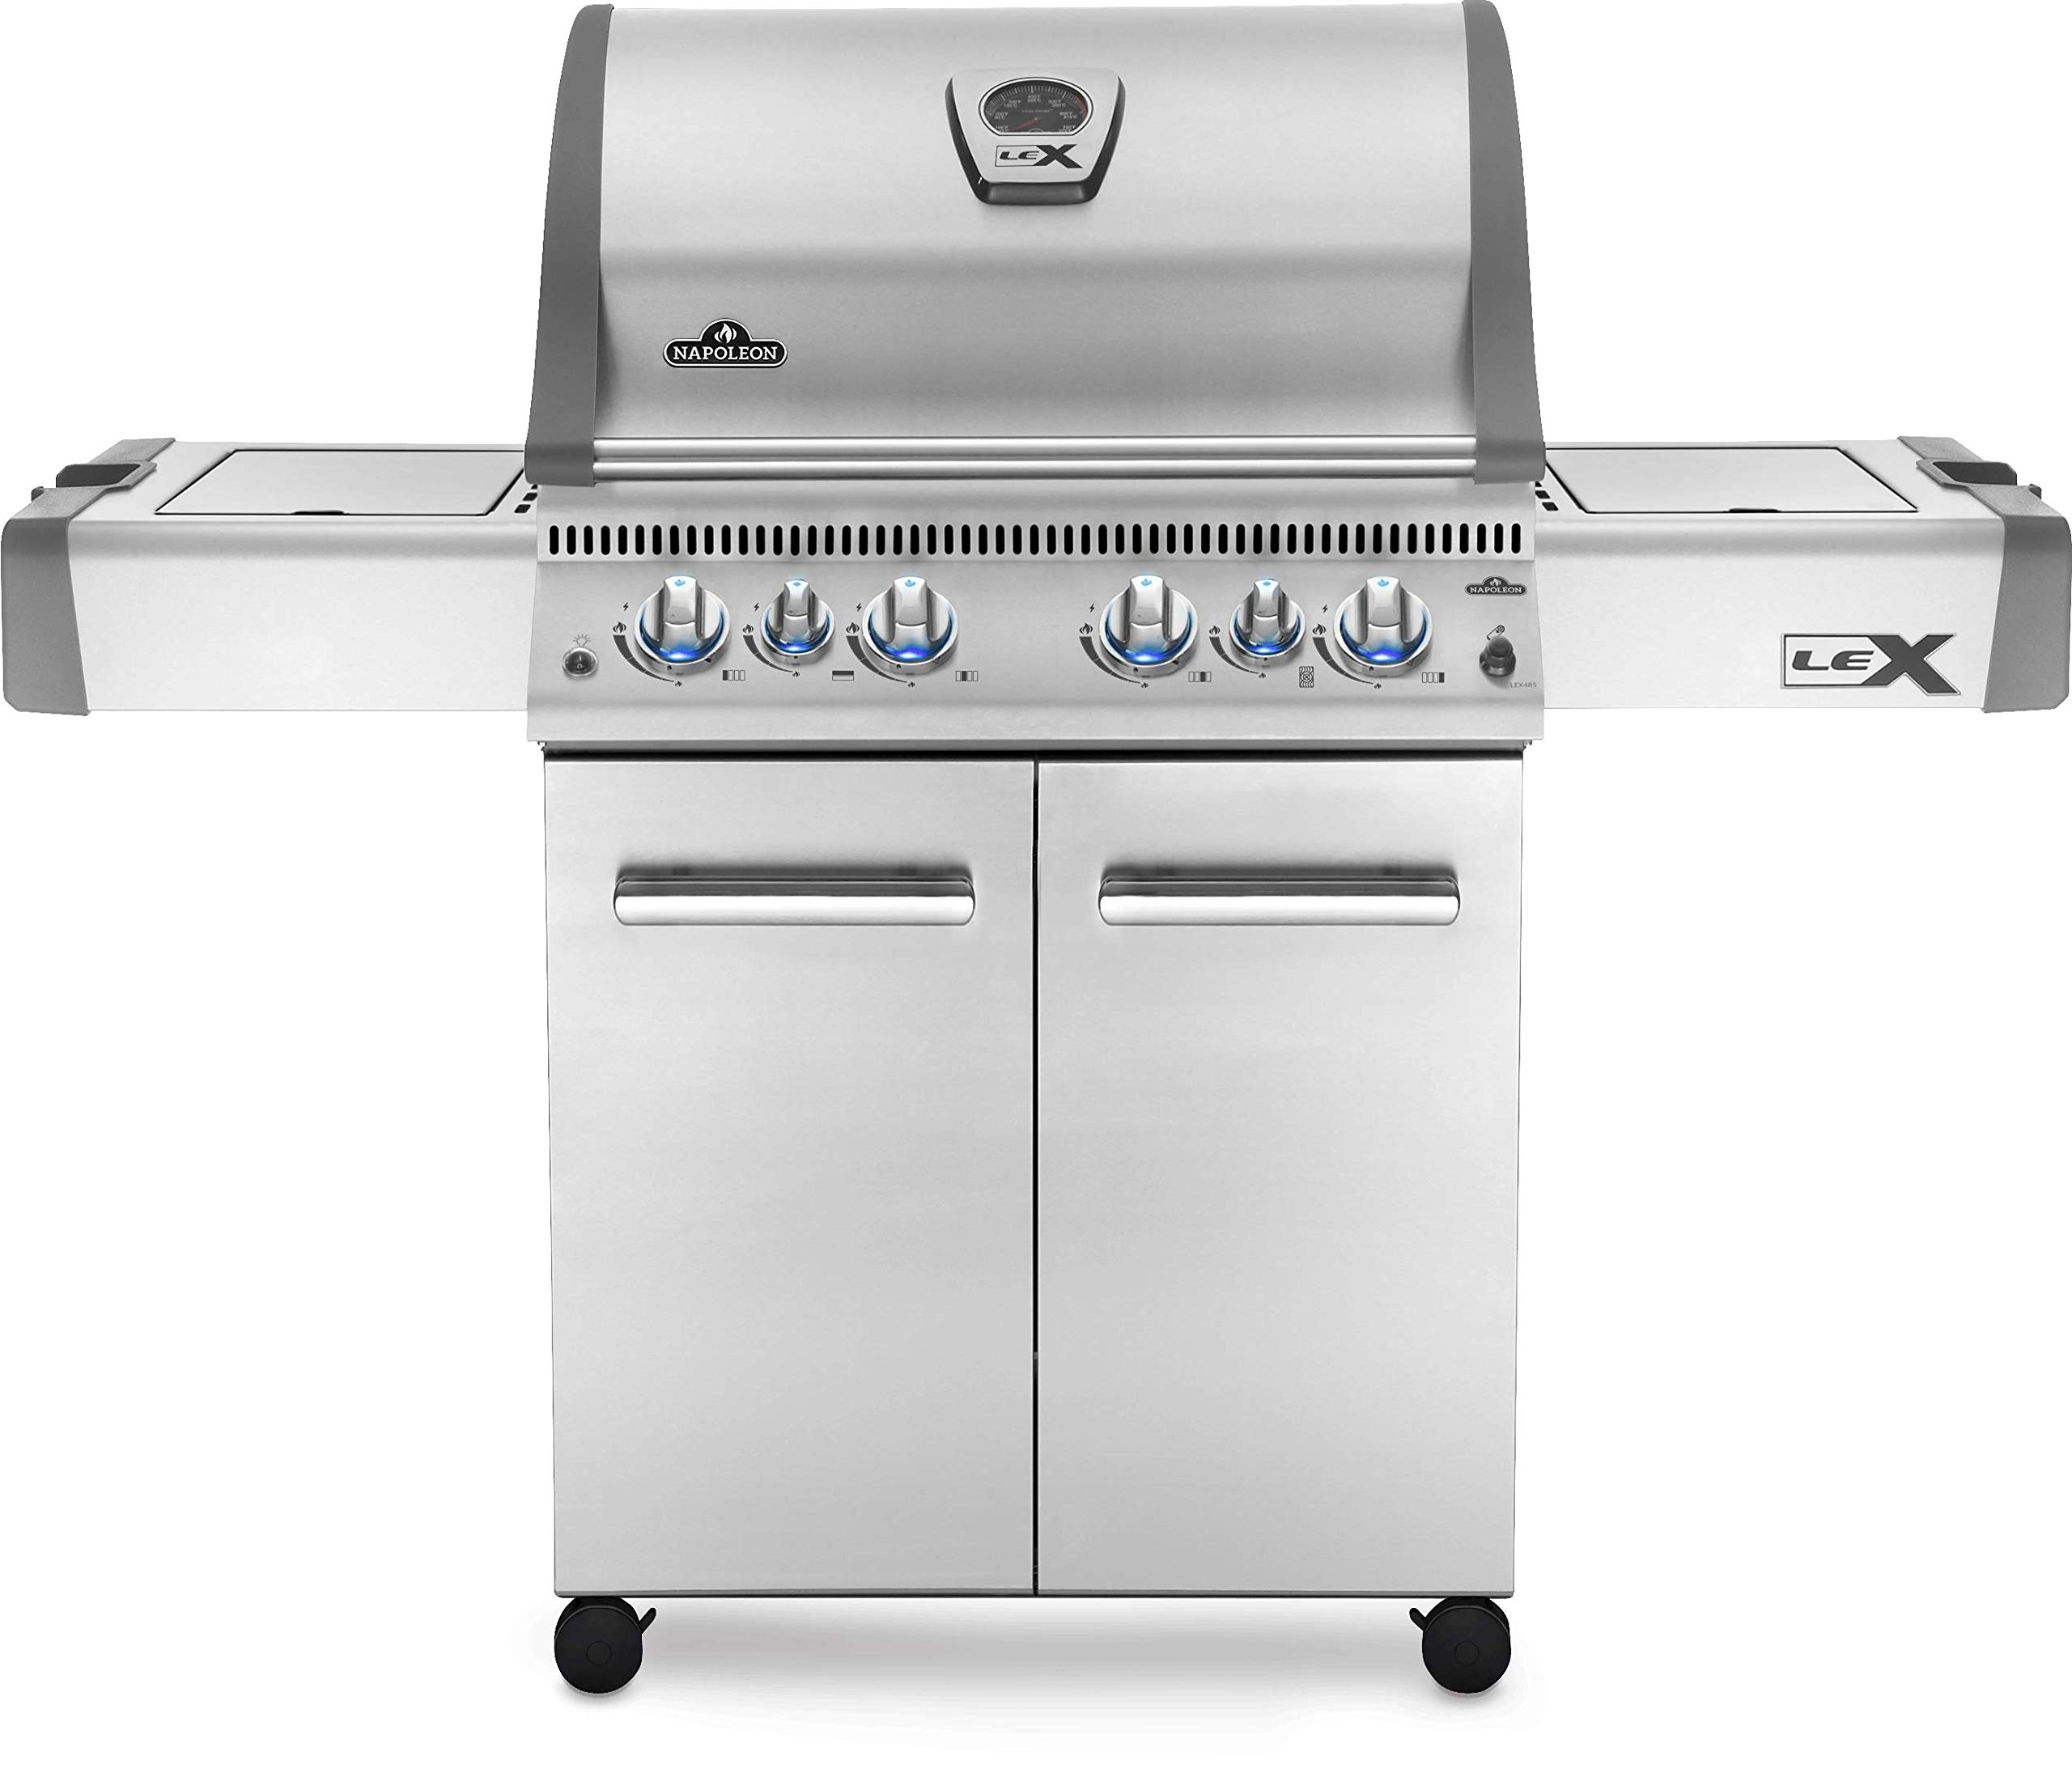 Napoleon LEX 485 BBQ Grill, Stainless Steel, Propane Gas - LEX485RSIBPSS-1 - With Infrared Rear and Side Burner, Barbecue Gas Cart, Instant Failsafe Ignition, Backlit Control Knobs